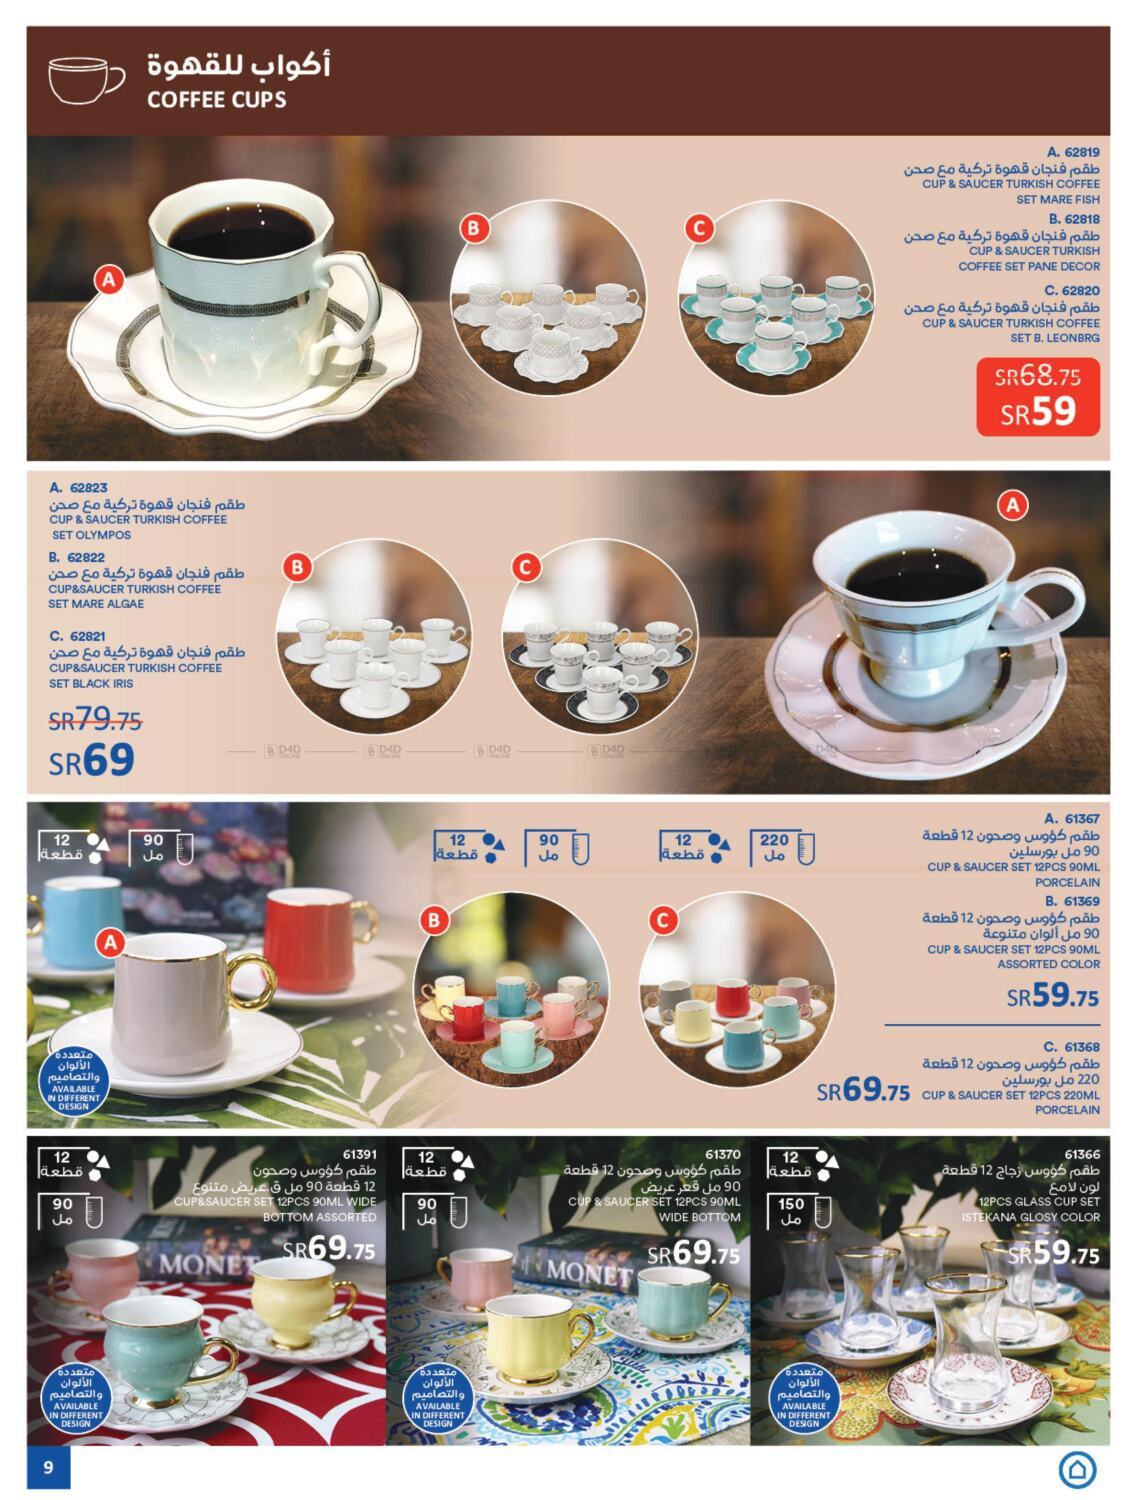 SACO Offers for Coffee Lovers in Saudi Arabia Offers ...